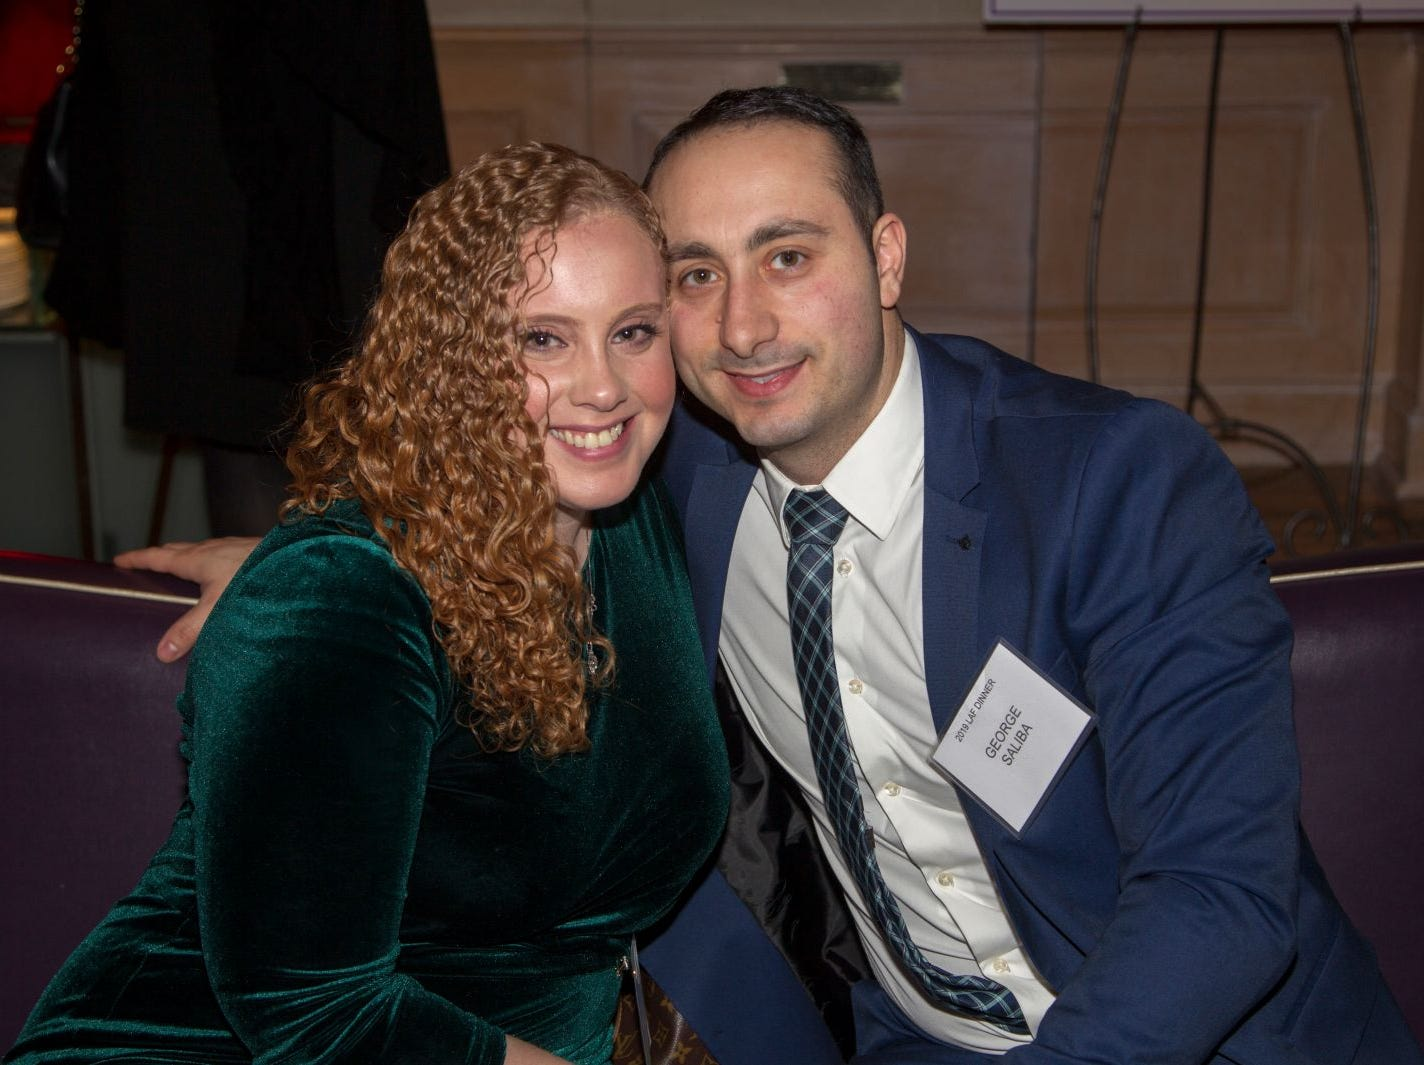 Victoria Miranda, George Saliba. Eva's Village hosted its second annual Lawyers, Accountants and Financial Professionals Benefit Dinner at Westmount Country Club in Woodland Park. 02/21/2019